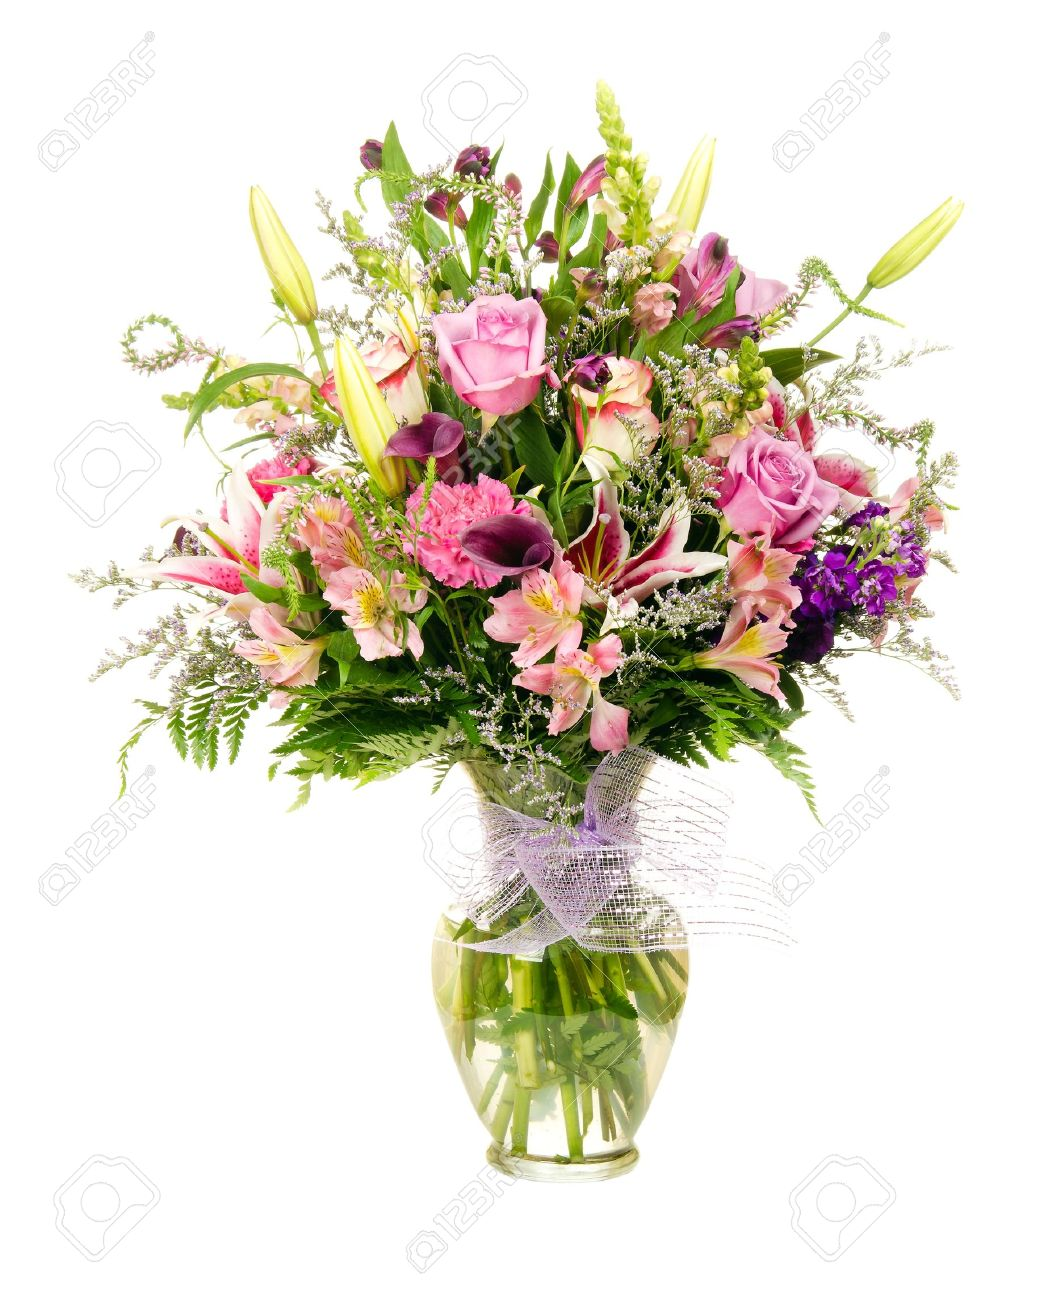 Colorful Florist Made Floral Flower Arrangement Bouquet With Stock